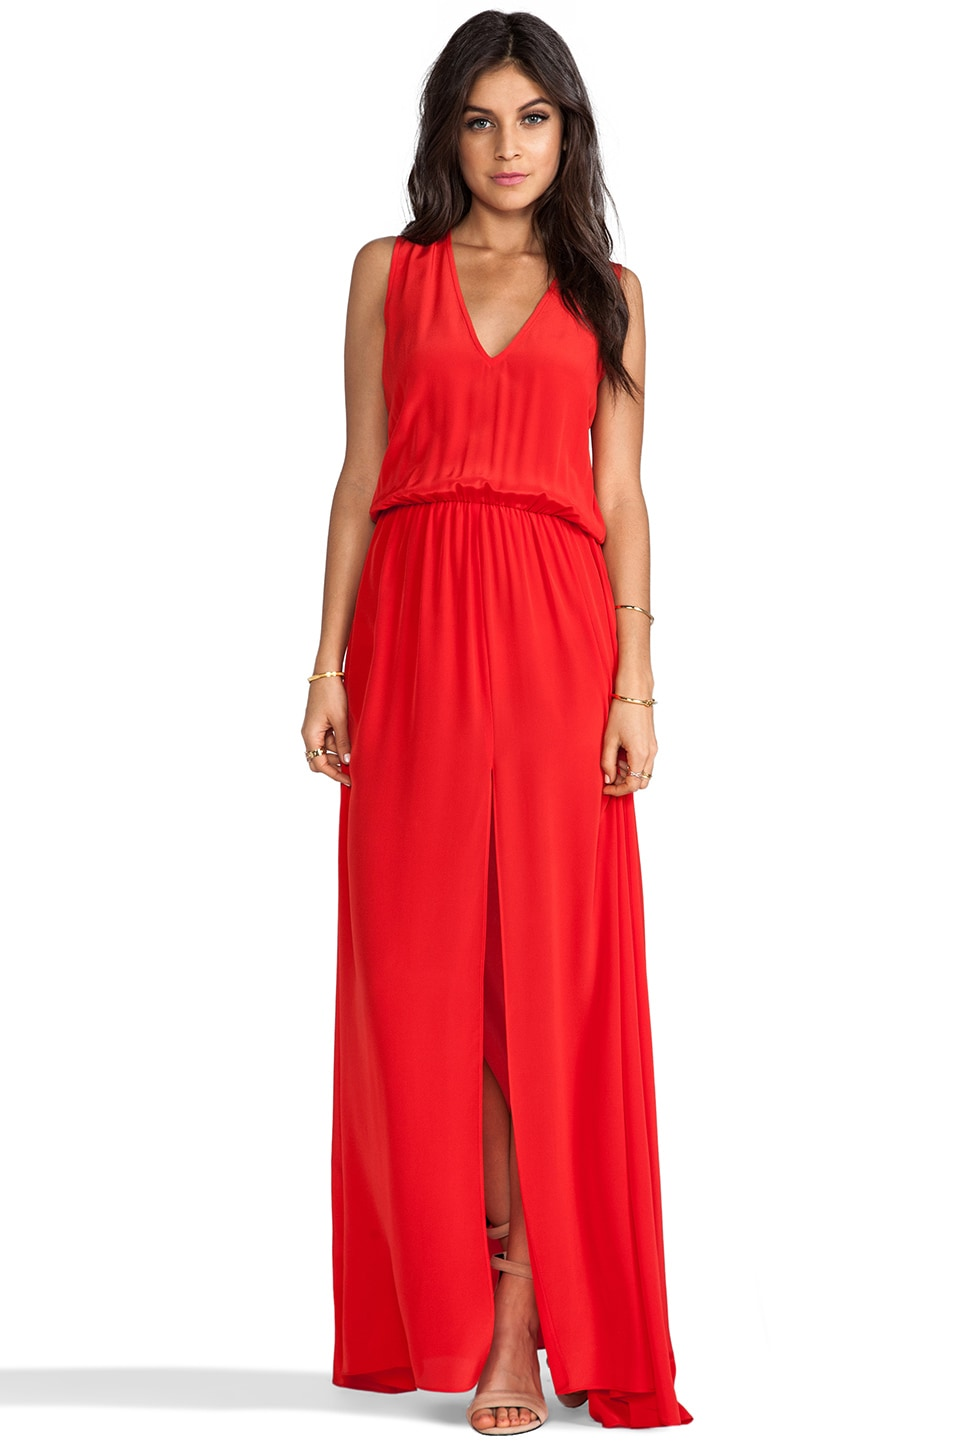 Alexis Aviva Maxi Dress in Red